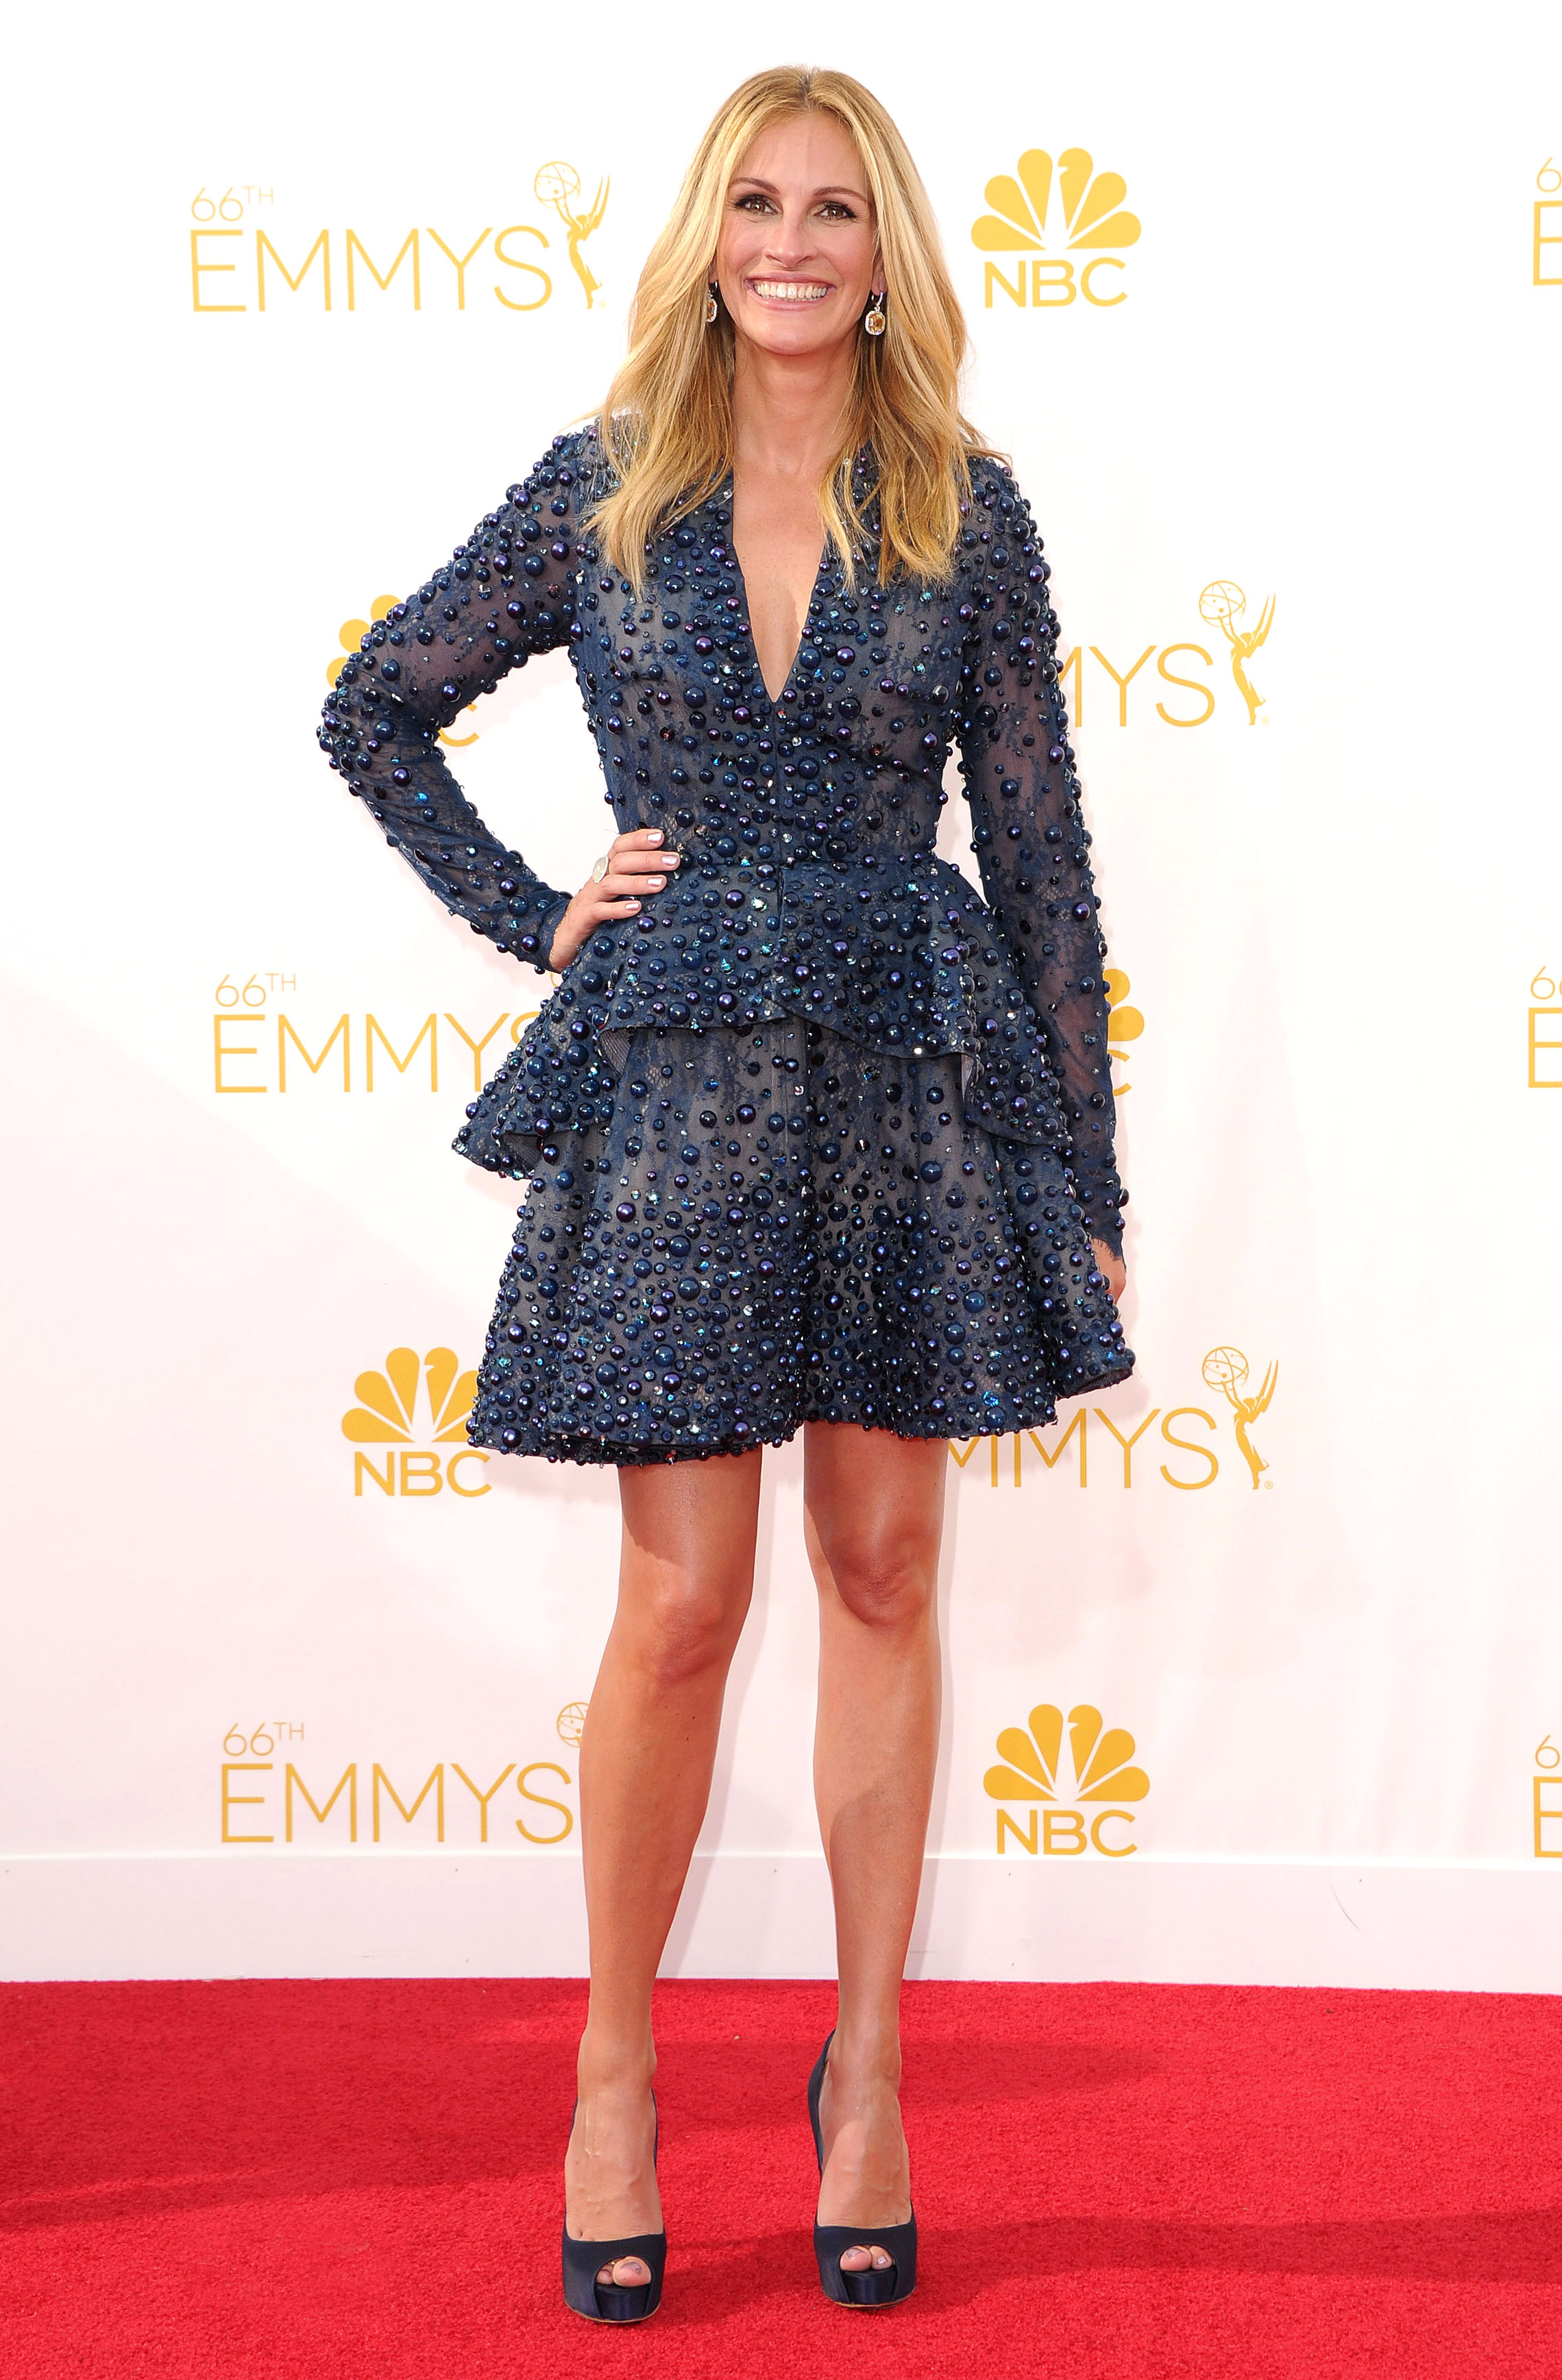 Julia Roberts - In one of her most whimsical red carpet moments, the actress rocked an embellished Elie Saab mini at the 2014 Emmys.